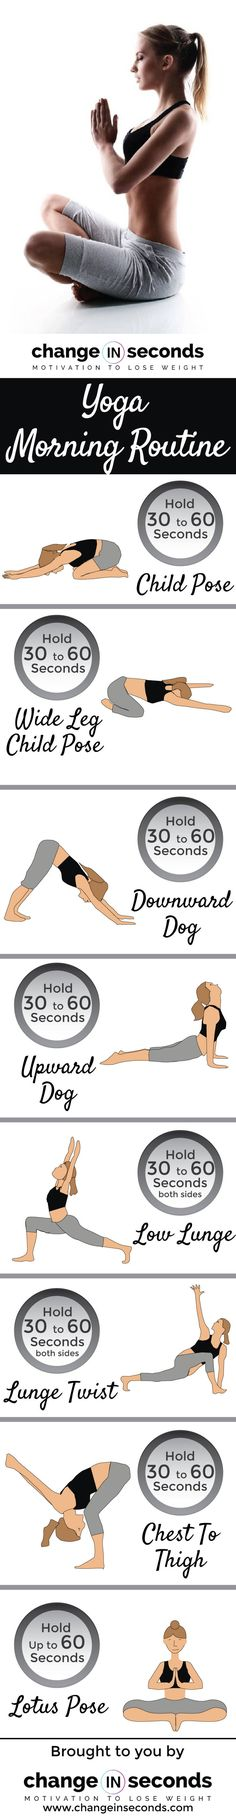 Yoga Morning Routine